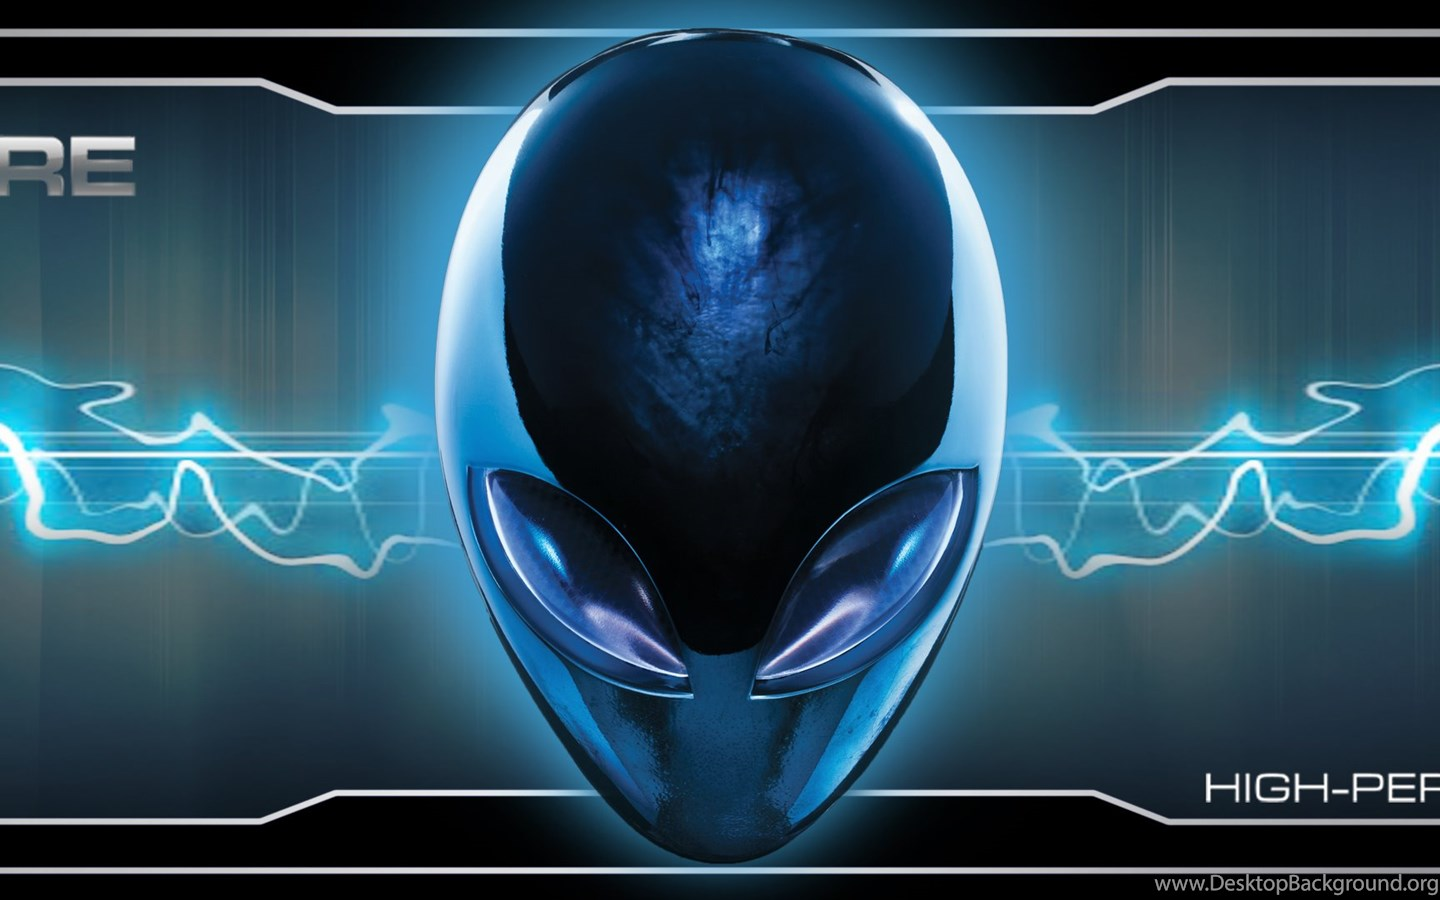 Engineering And Technology Ultra Hd Wallpapers: Wonderful Engineering And Technology: HD Alienware